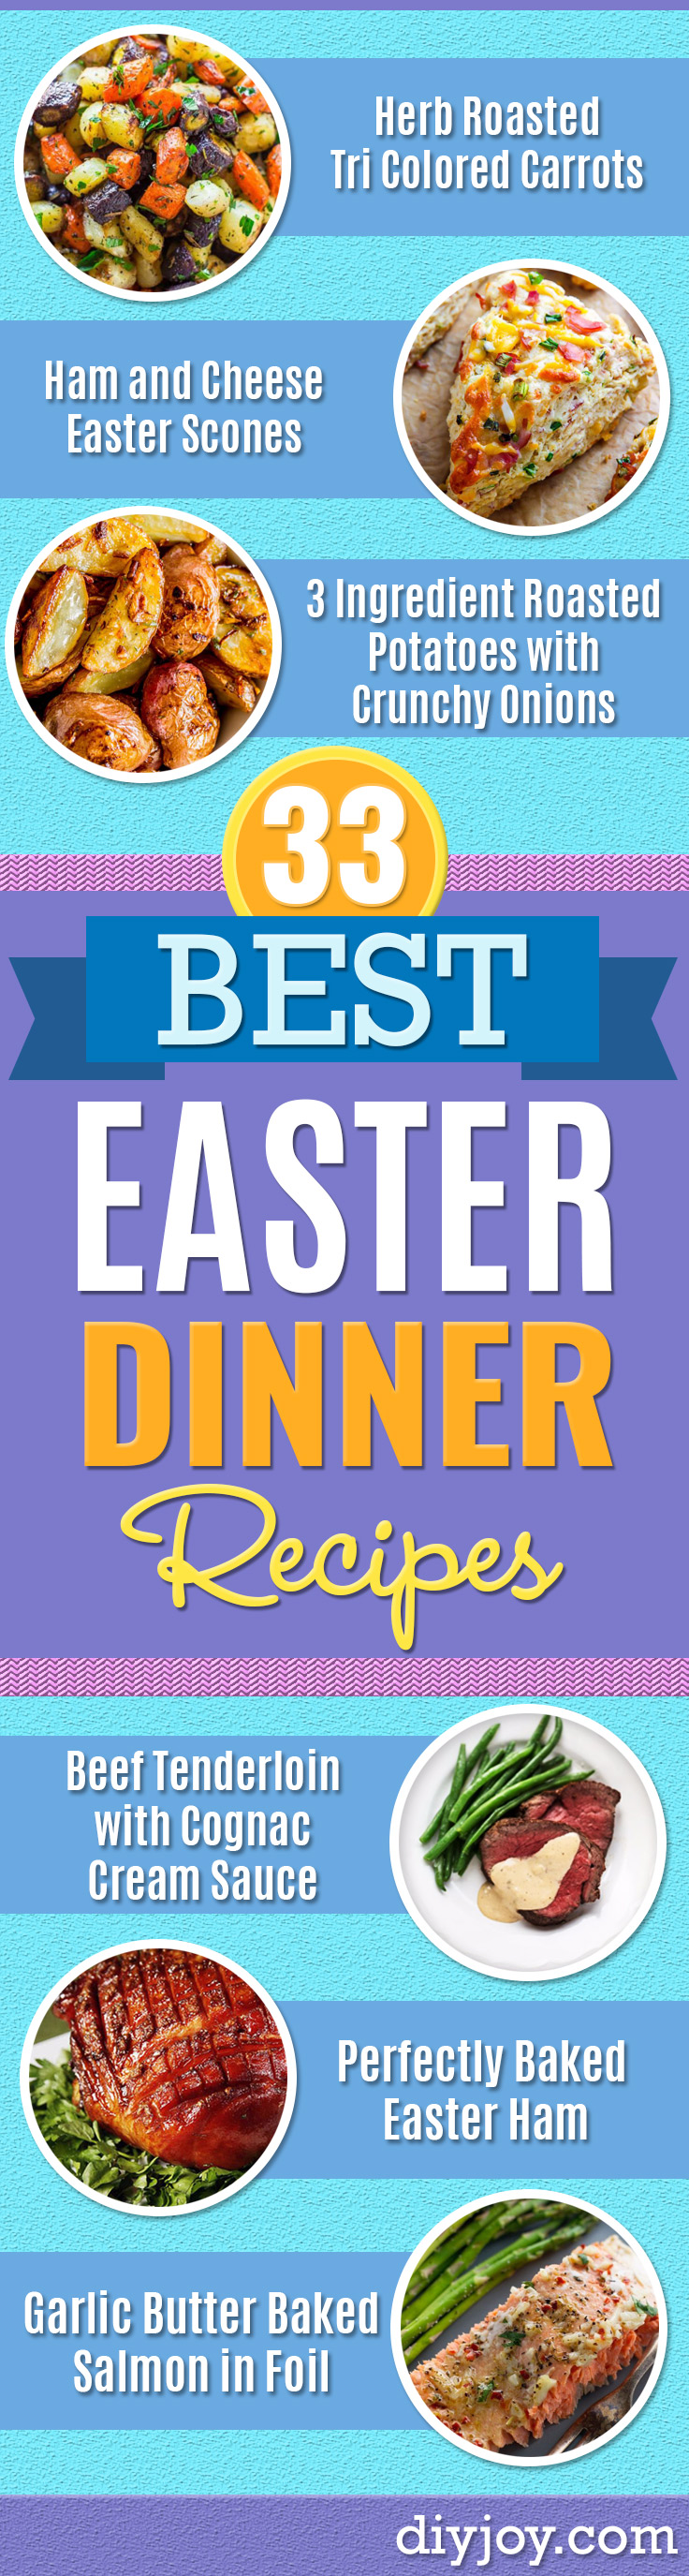 Best Easter Dinner Recipes - Easy Recipe Ideas for Easter Dinners and Holiday Meals for Families - Side Dishes, Slow Cooker Recipe Tutorials, Main Courses, Traditional Meat, Vegetable and Dessert Ideas - Desserts, Pies, Cakes, Ham and Beef, Lamb - DIY Projects and Crafts by DIY JOY http://diyjoy.com/easter-dinner-recipes